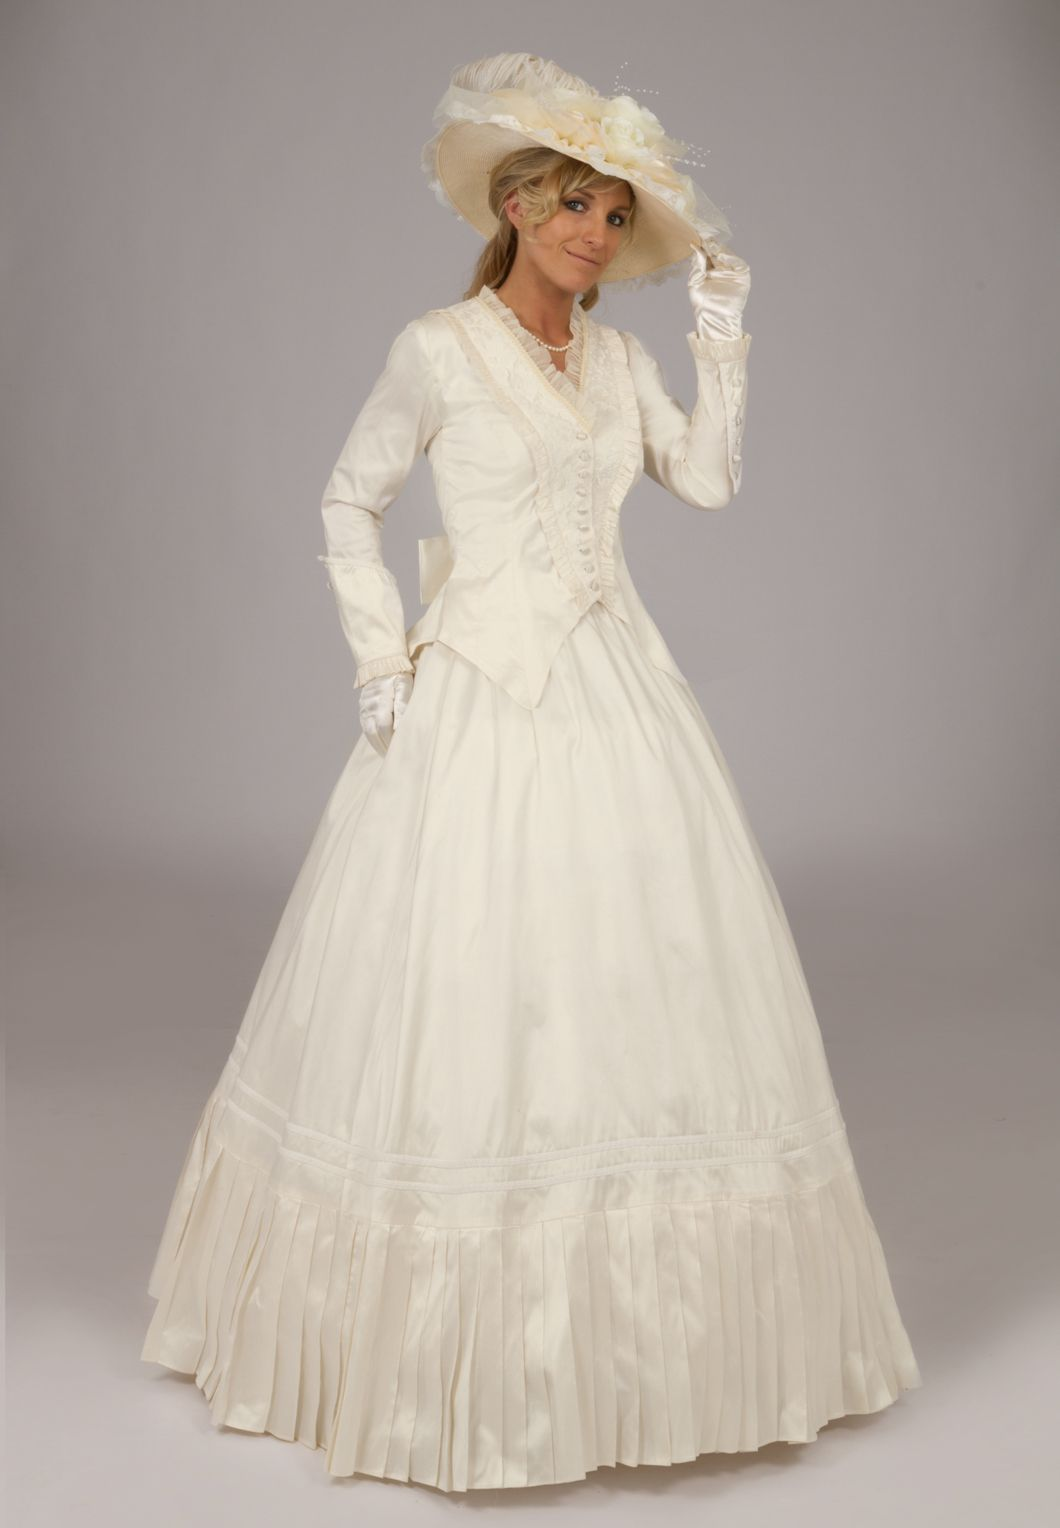 Civil War Victorian Styled Gown | Pinterest | Civil wars, Victorian ...